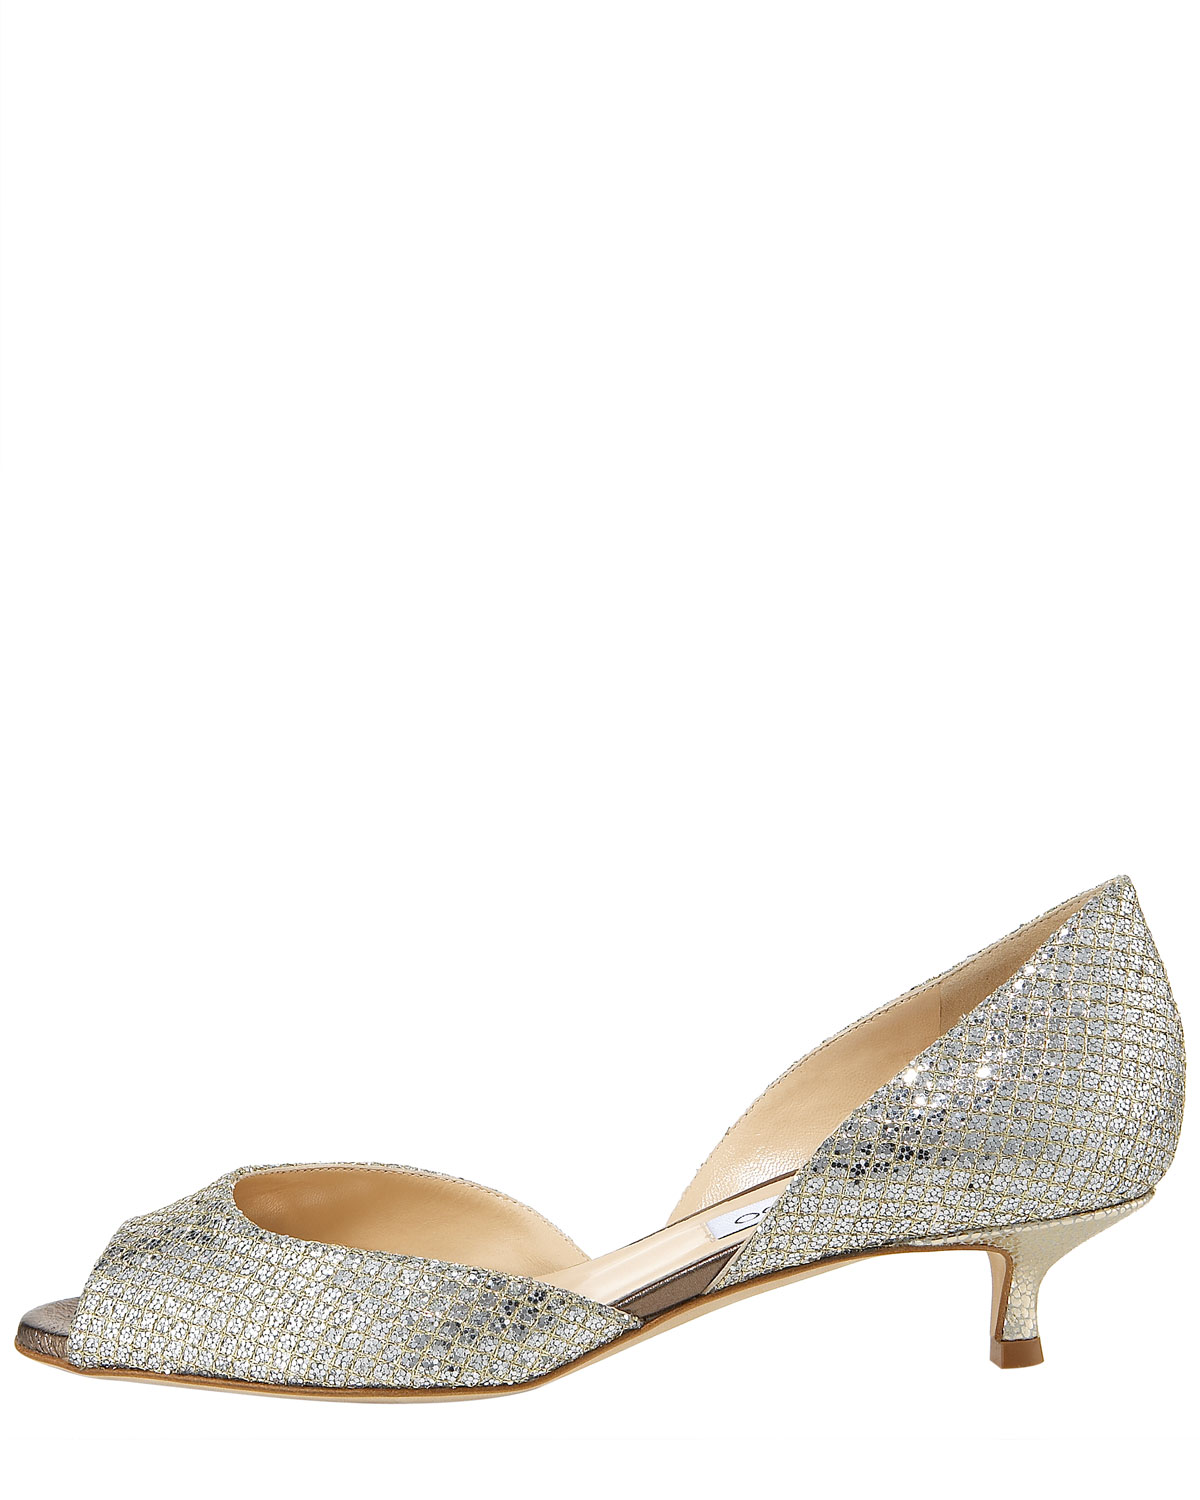 Jimmy choo Lyon Glittered Kitten Heel Dorsa in Metallic | Lyst